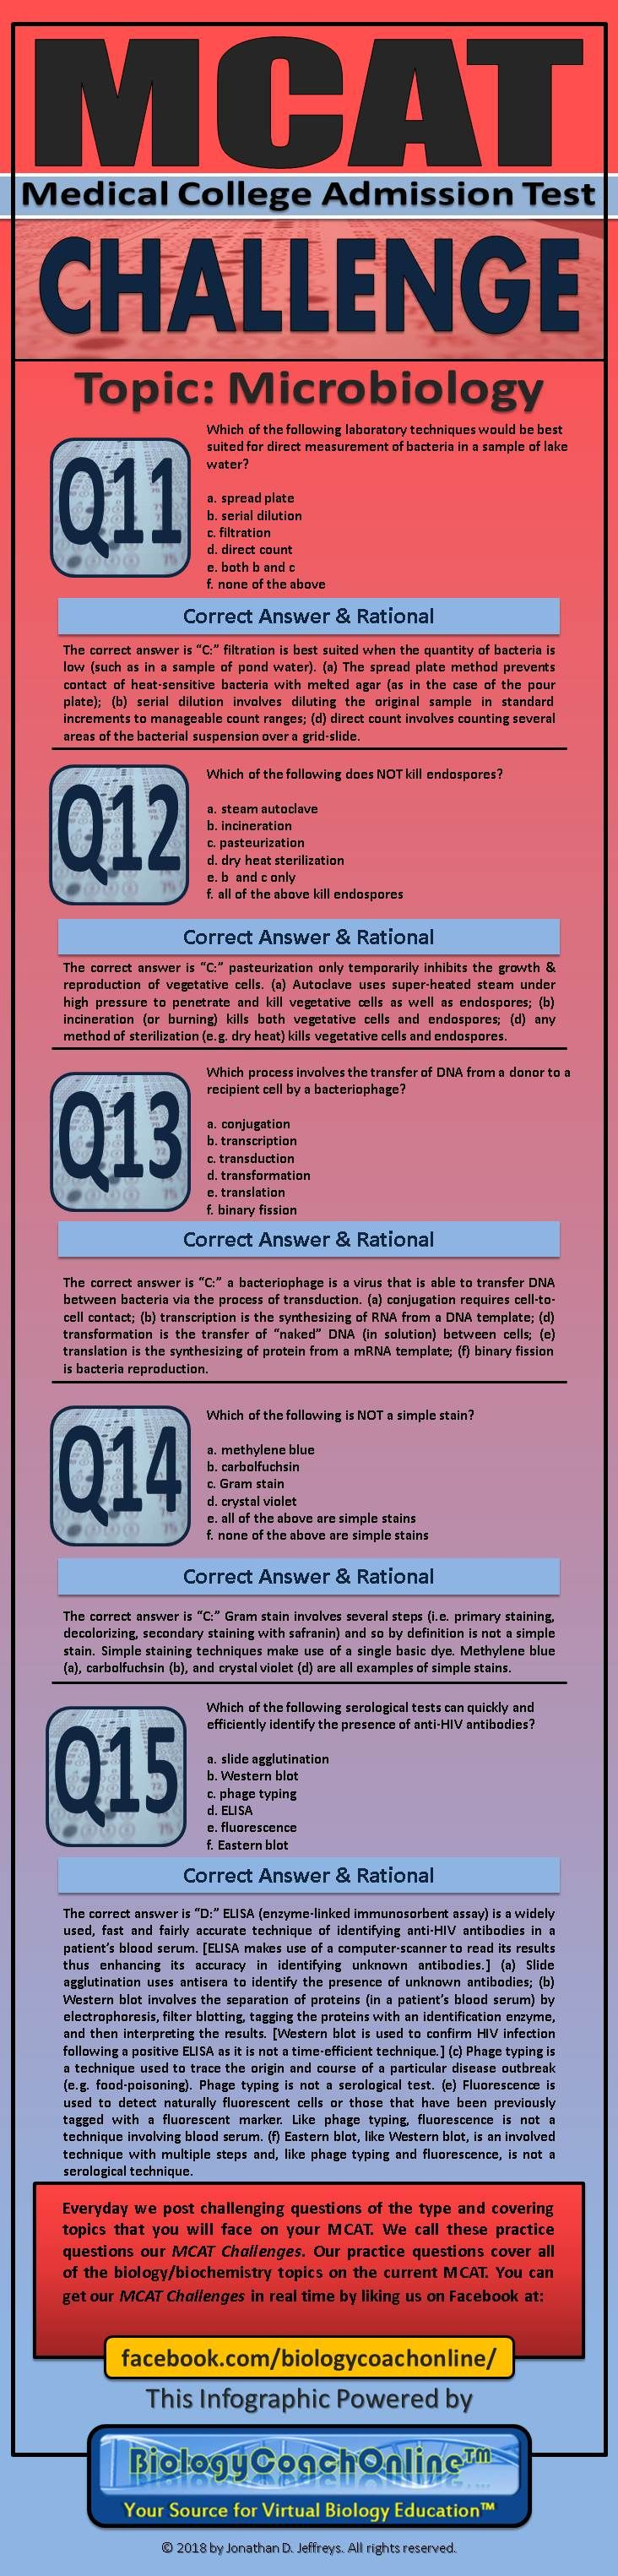 Here are all of this week's #MCAT #Challenge questions together in one #infographic. This week's topic was #Microbiology. Next week's topic: #Biochemistry #premed #medschool #medicalschool #futuredoctor #doctortobe